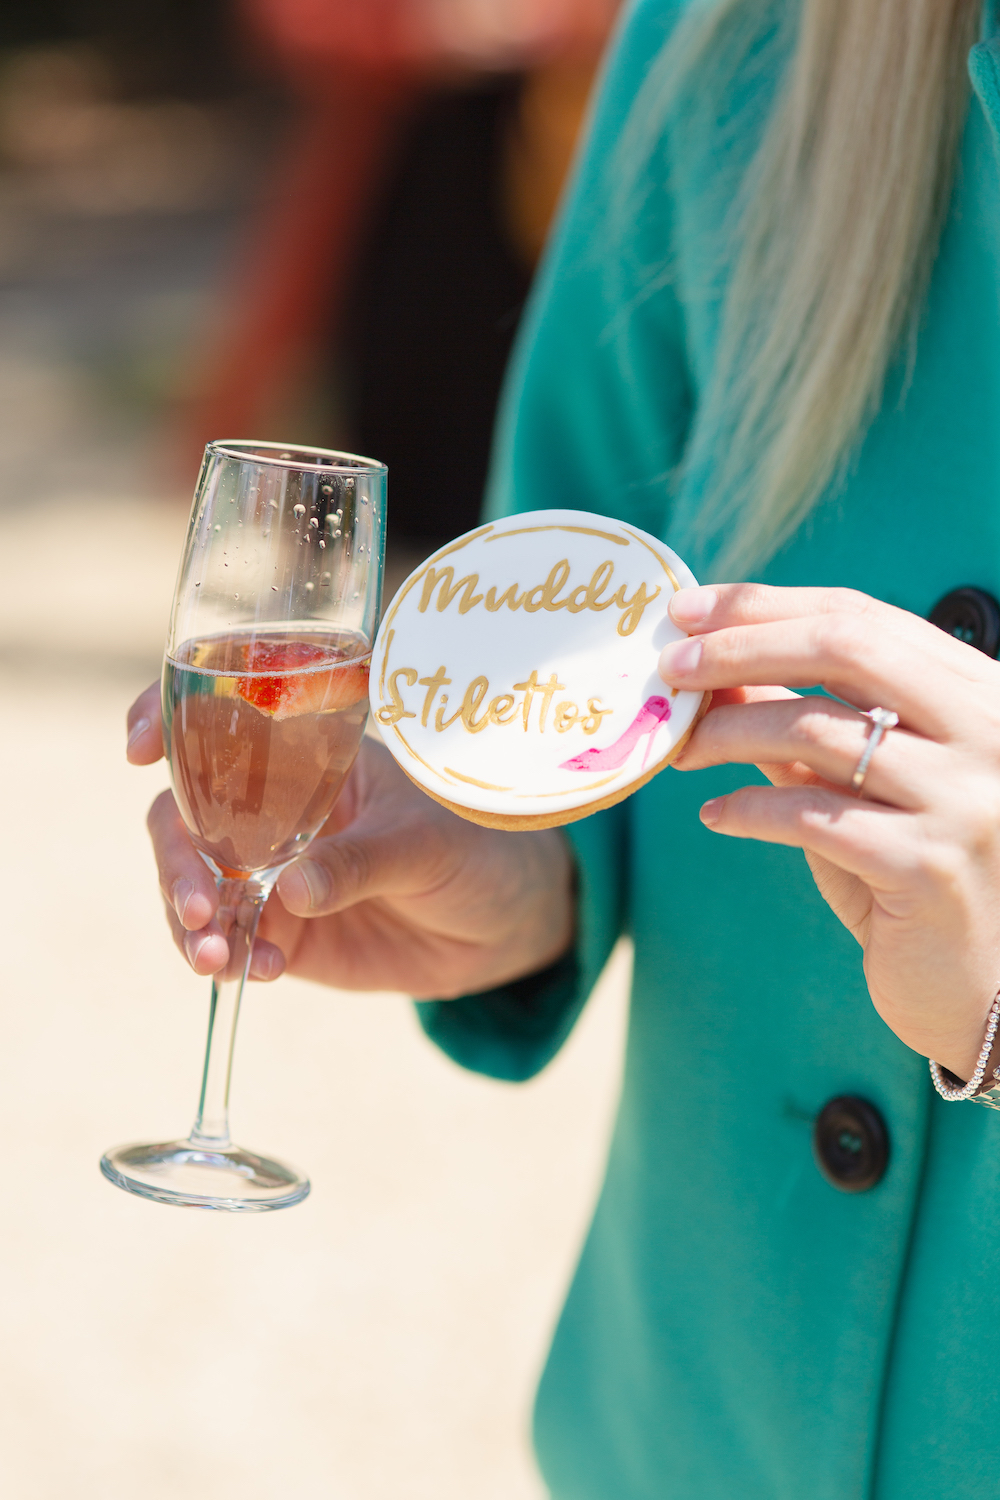 Cottonworth Rosé and a fabulous GatesBakes Muddy Stilettos biscuit